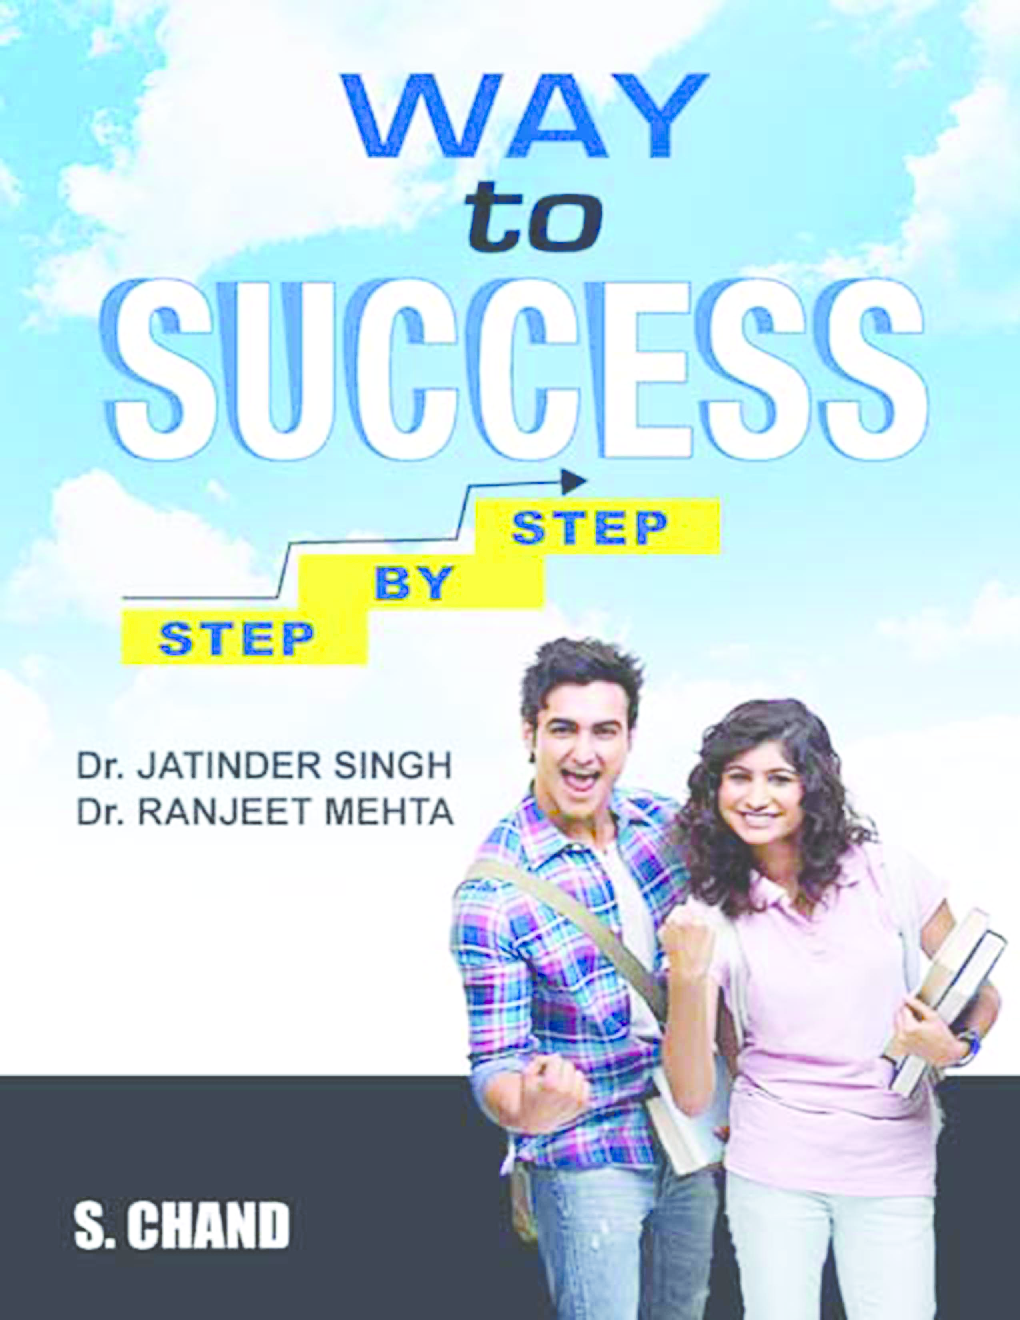 Way To Success Step By Step - Page 1